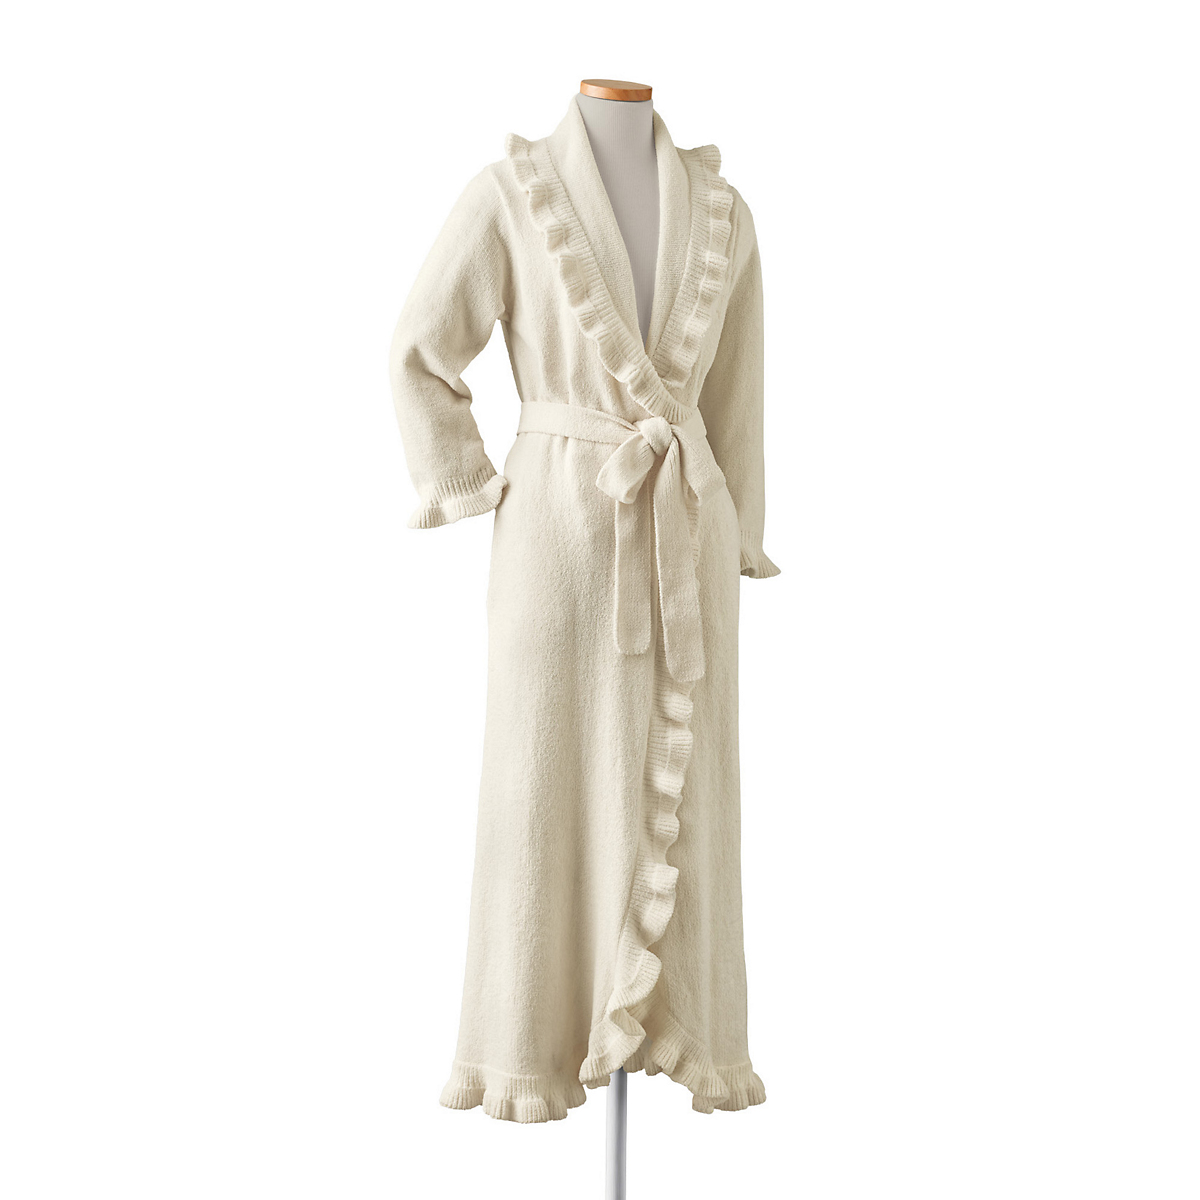 Ruffled Belted Robe